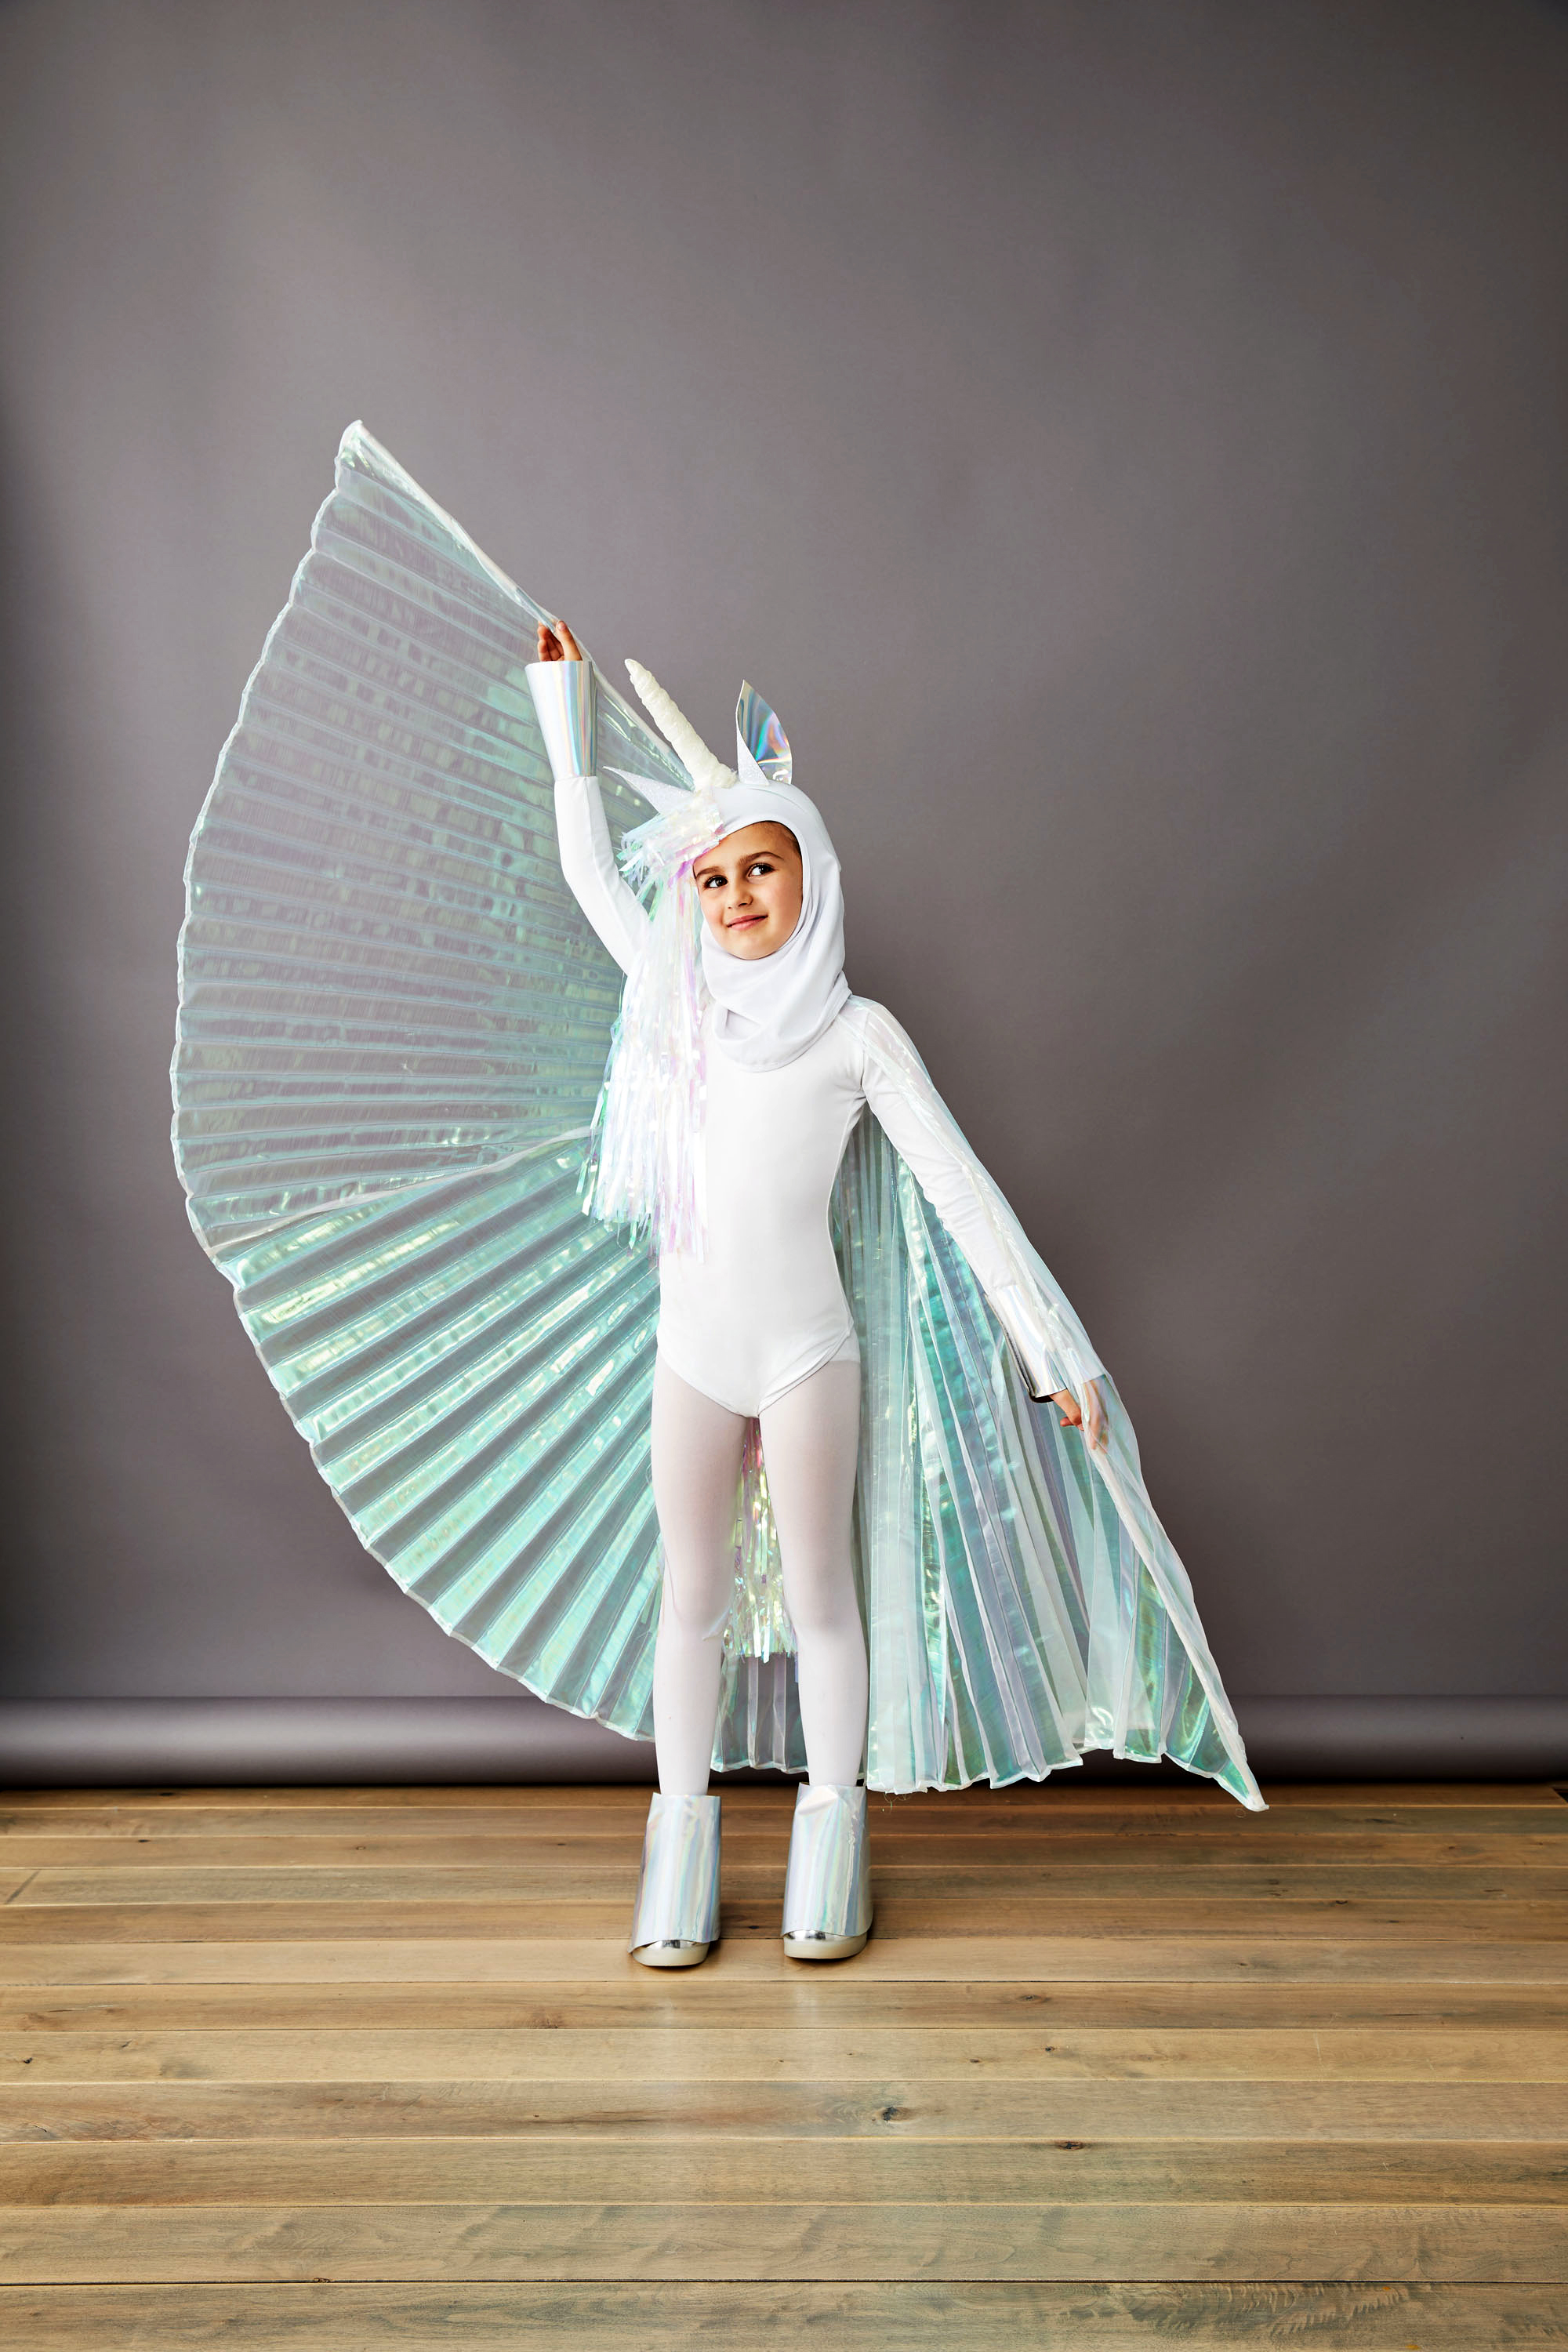 10 of the Most Popular Halloween Costumes, According to Google